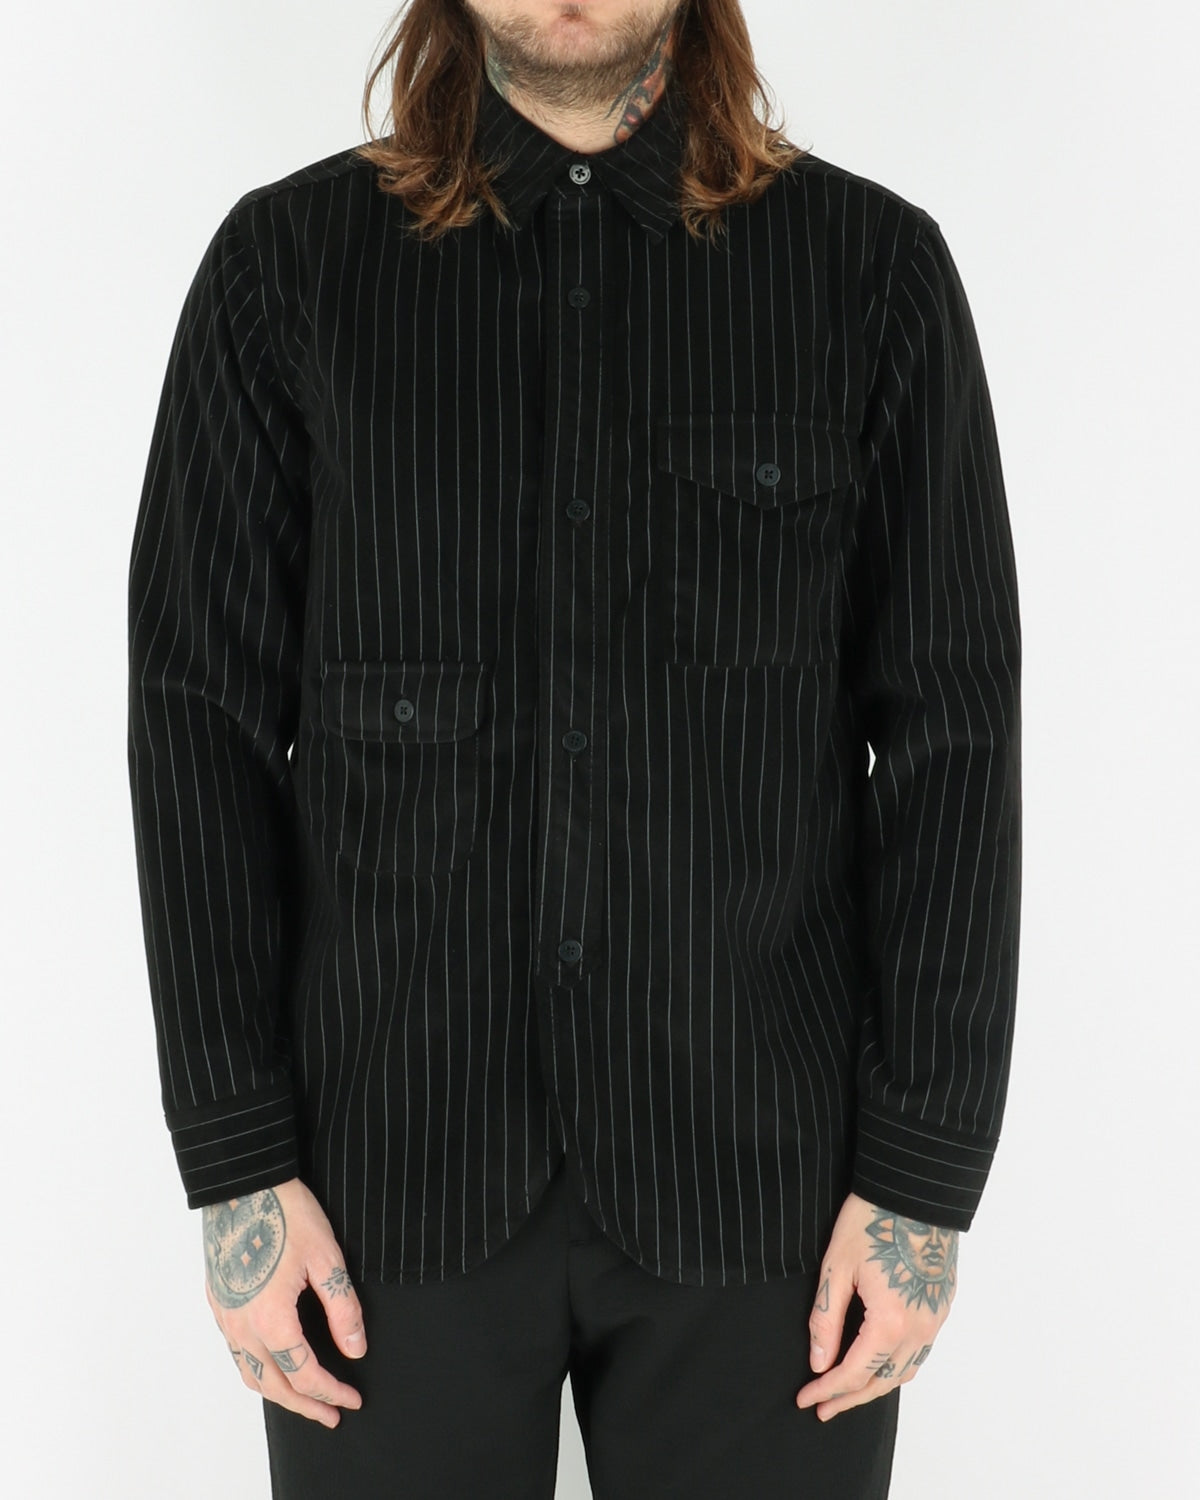 han kjobenhavn_army shirt_pinstripe_velour black_view_1_3